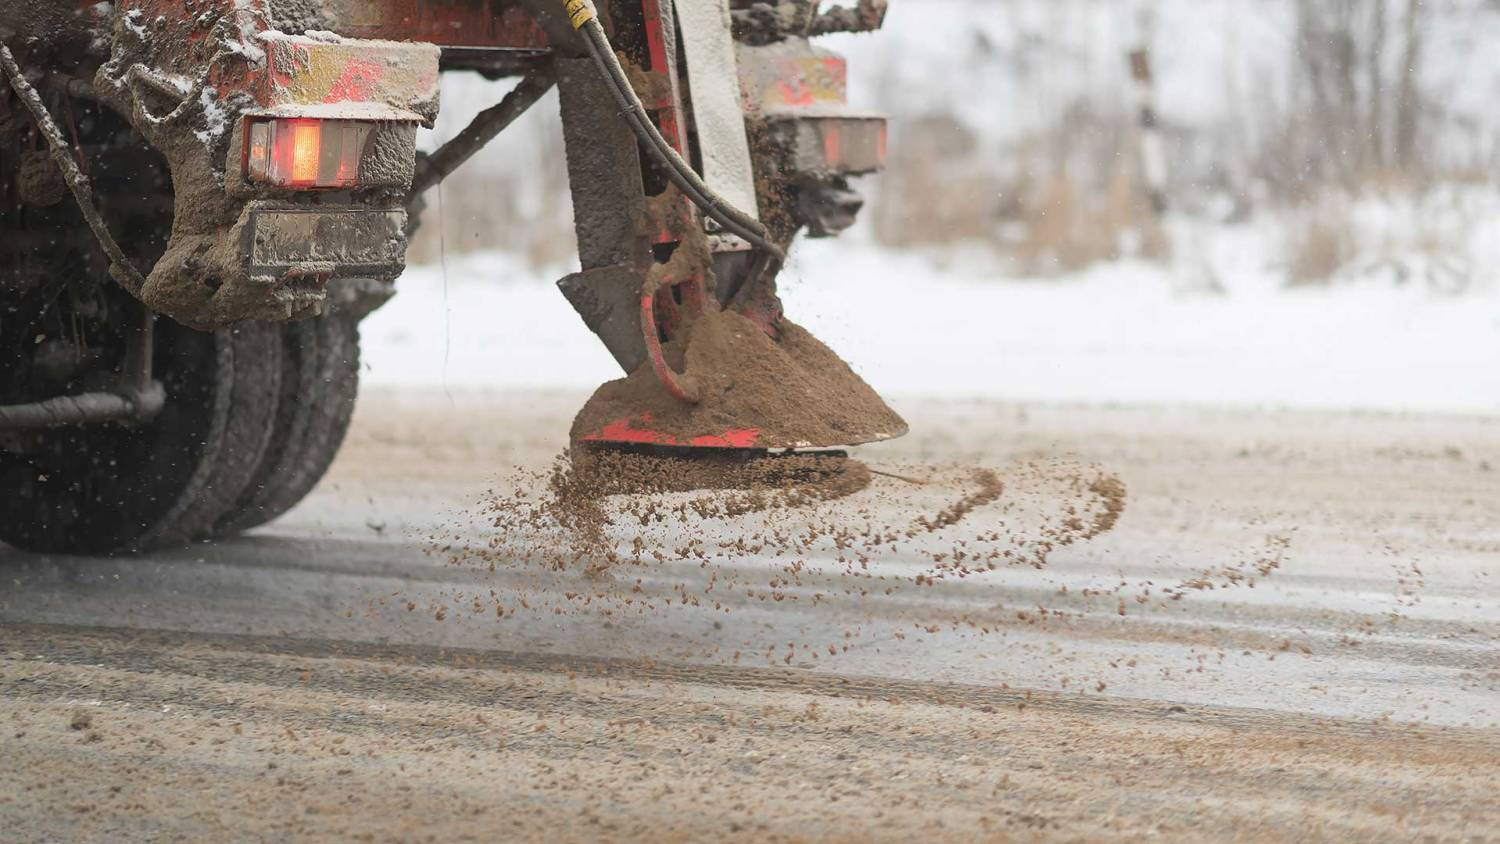 Close-up of a road gritter spreading salt